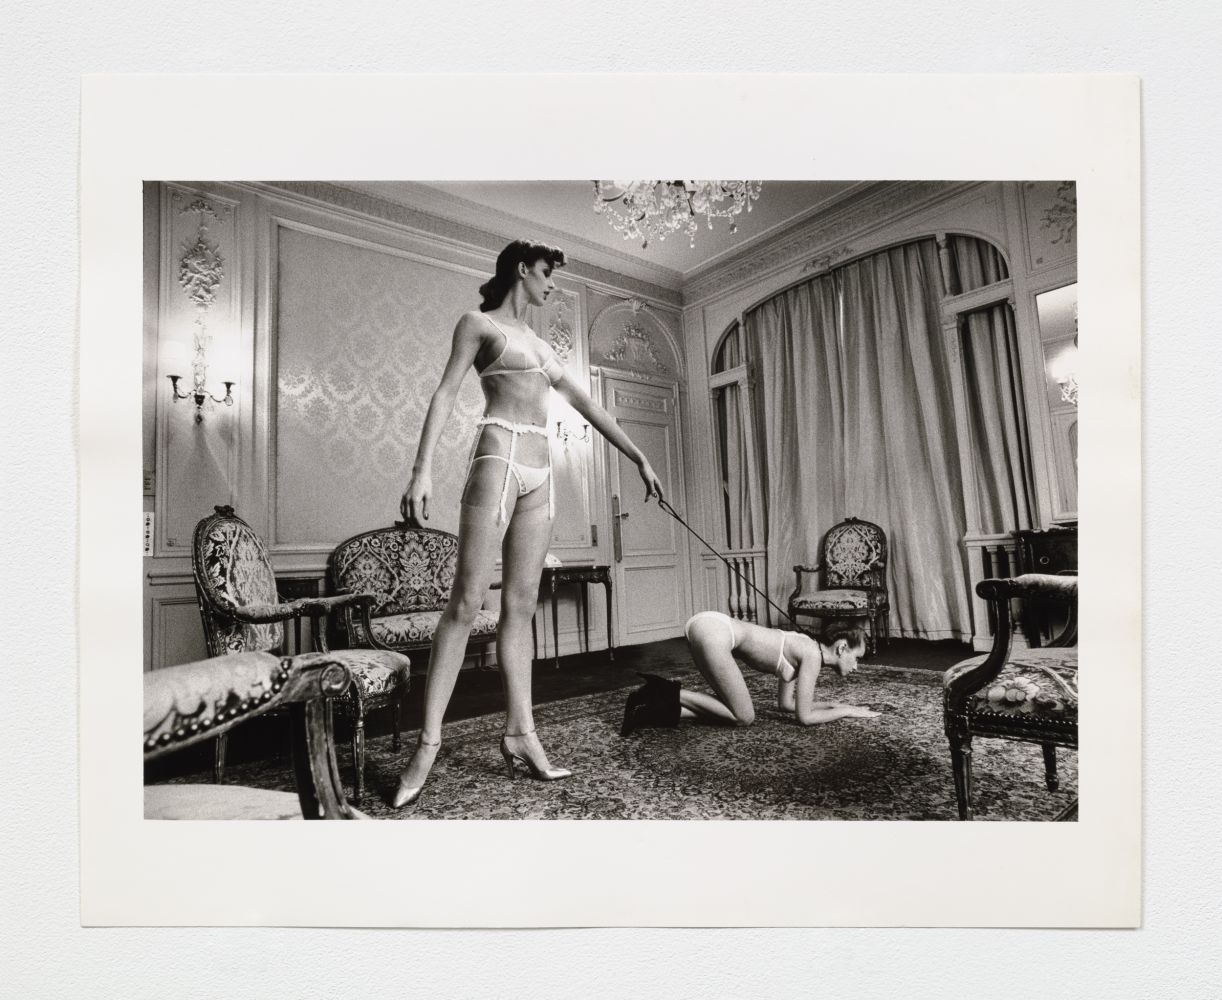 Black and white photographic print of a standing woman holding a leash attached to a crawling woman